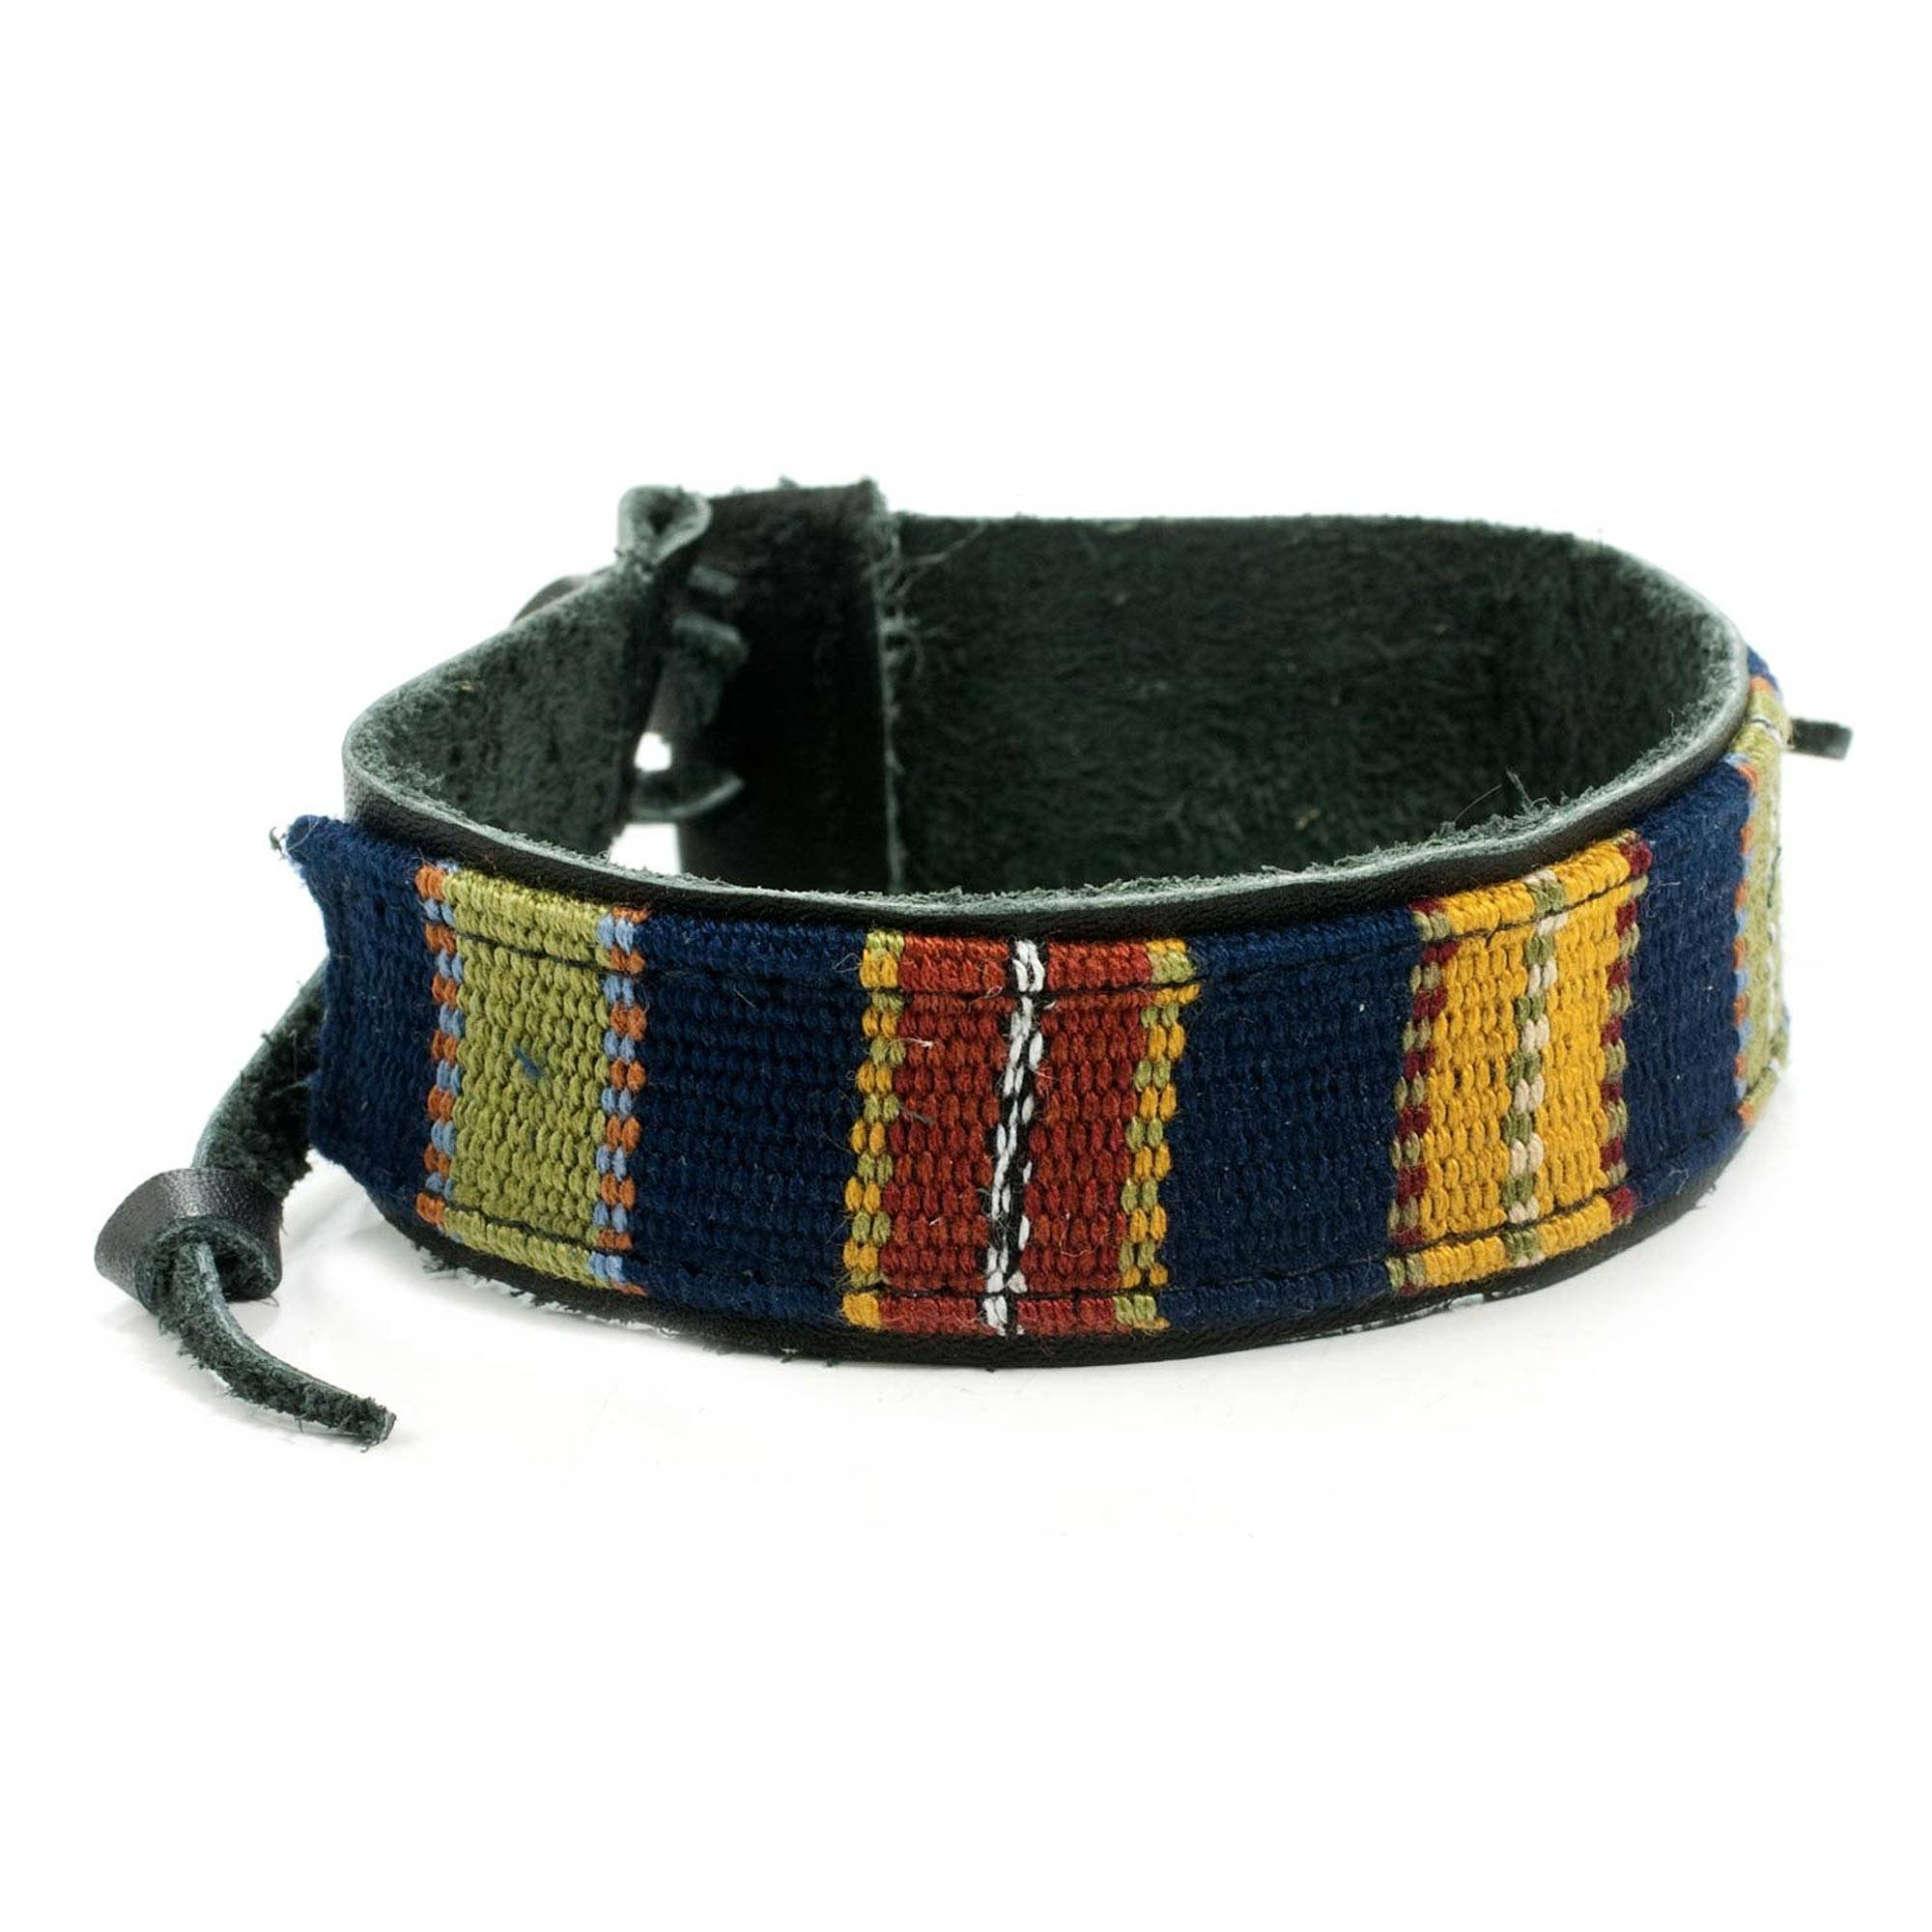 NOVICA Men's Black Leather and Multicolored Cotton Wristband Bracelet, Land of the Maya', 8.5''